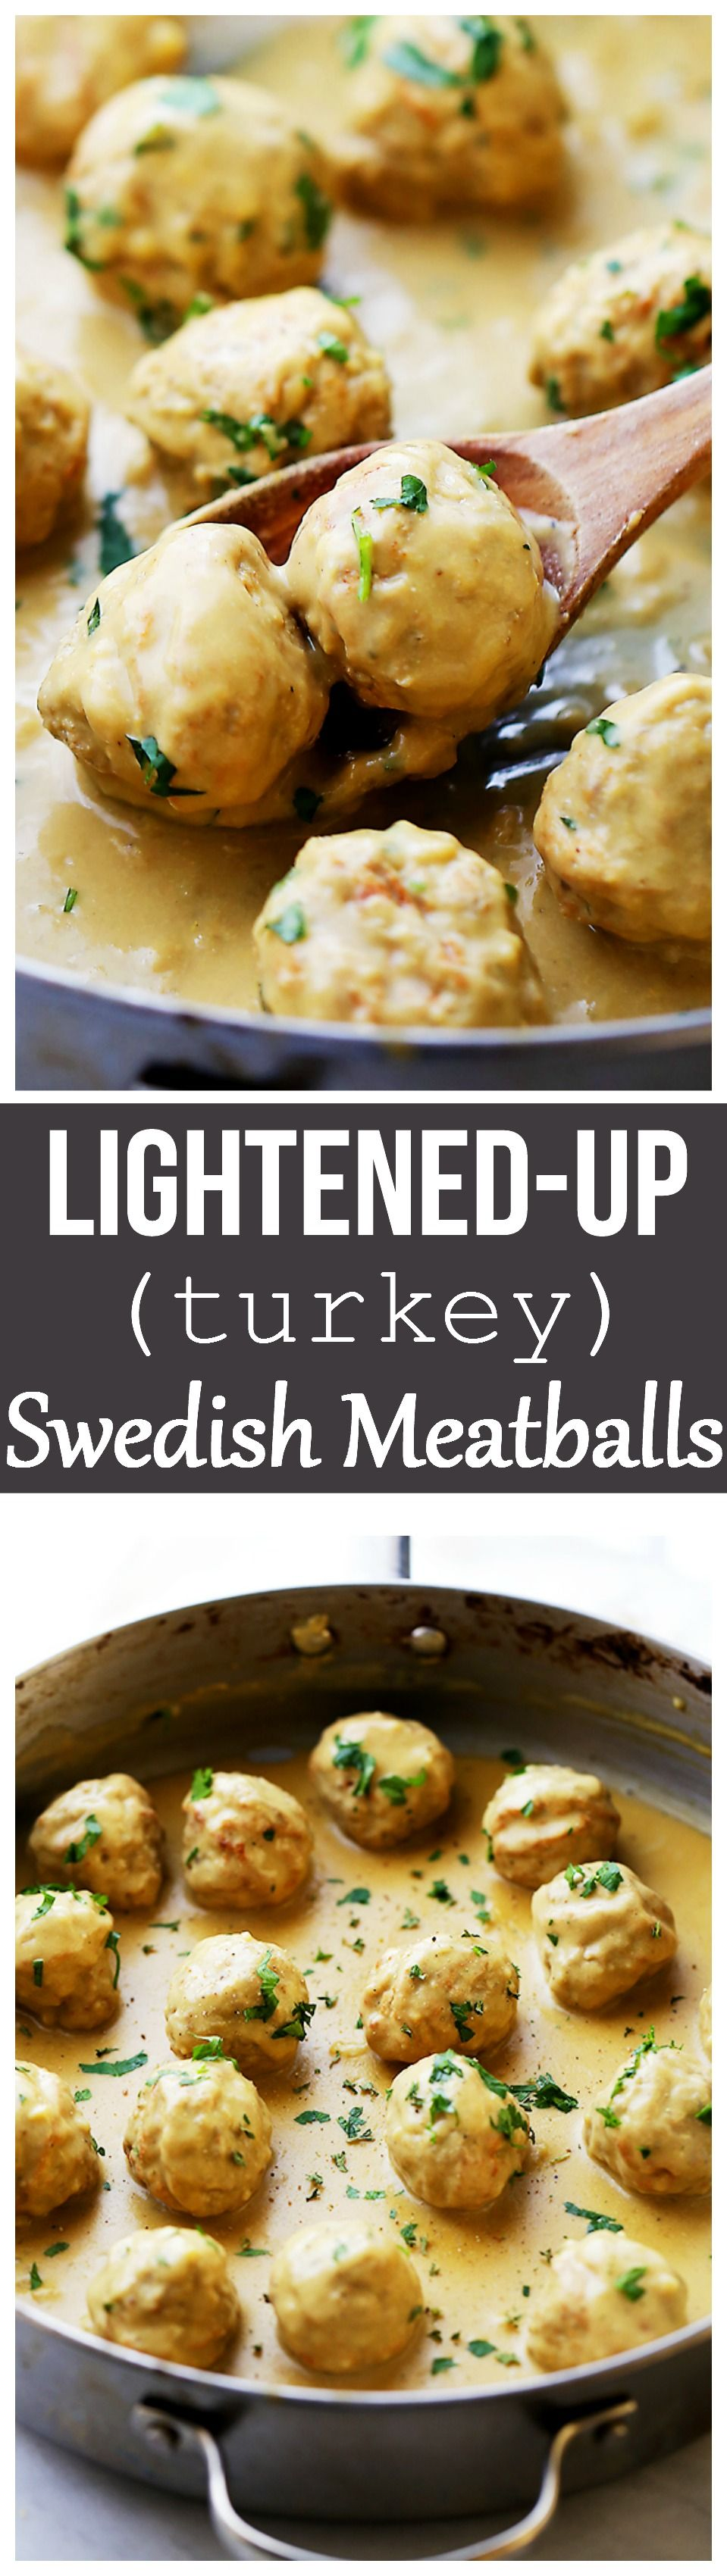 Lightened-Up (Turkey) Swedish Meatballs | Recipe ...